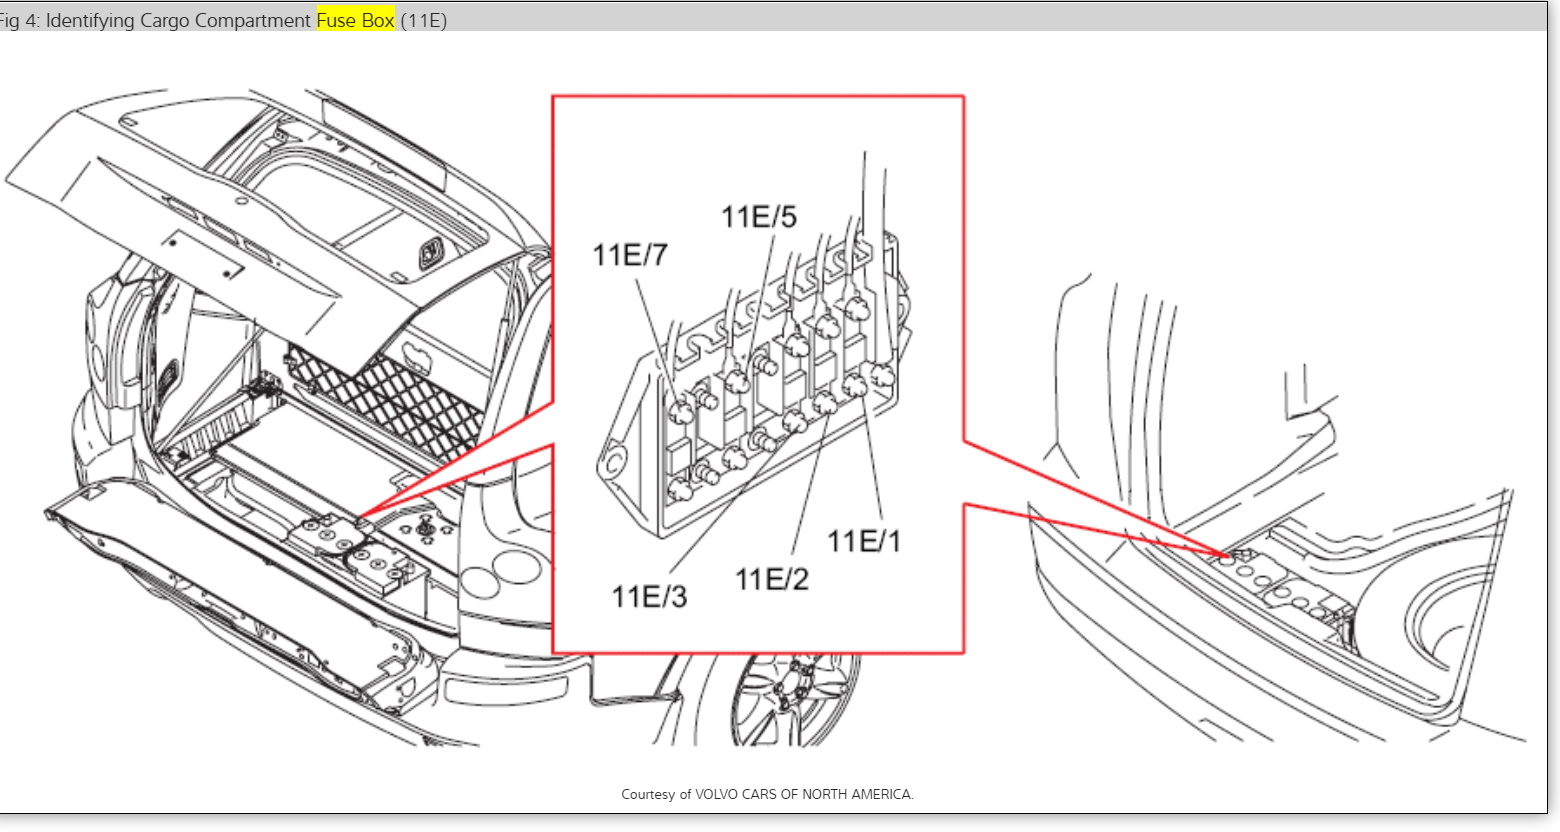 2007 Volvo Xc70 Fuse Box Diagram Images Gallery